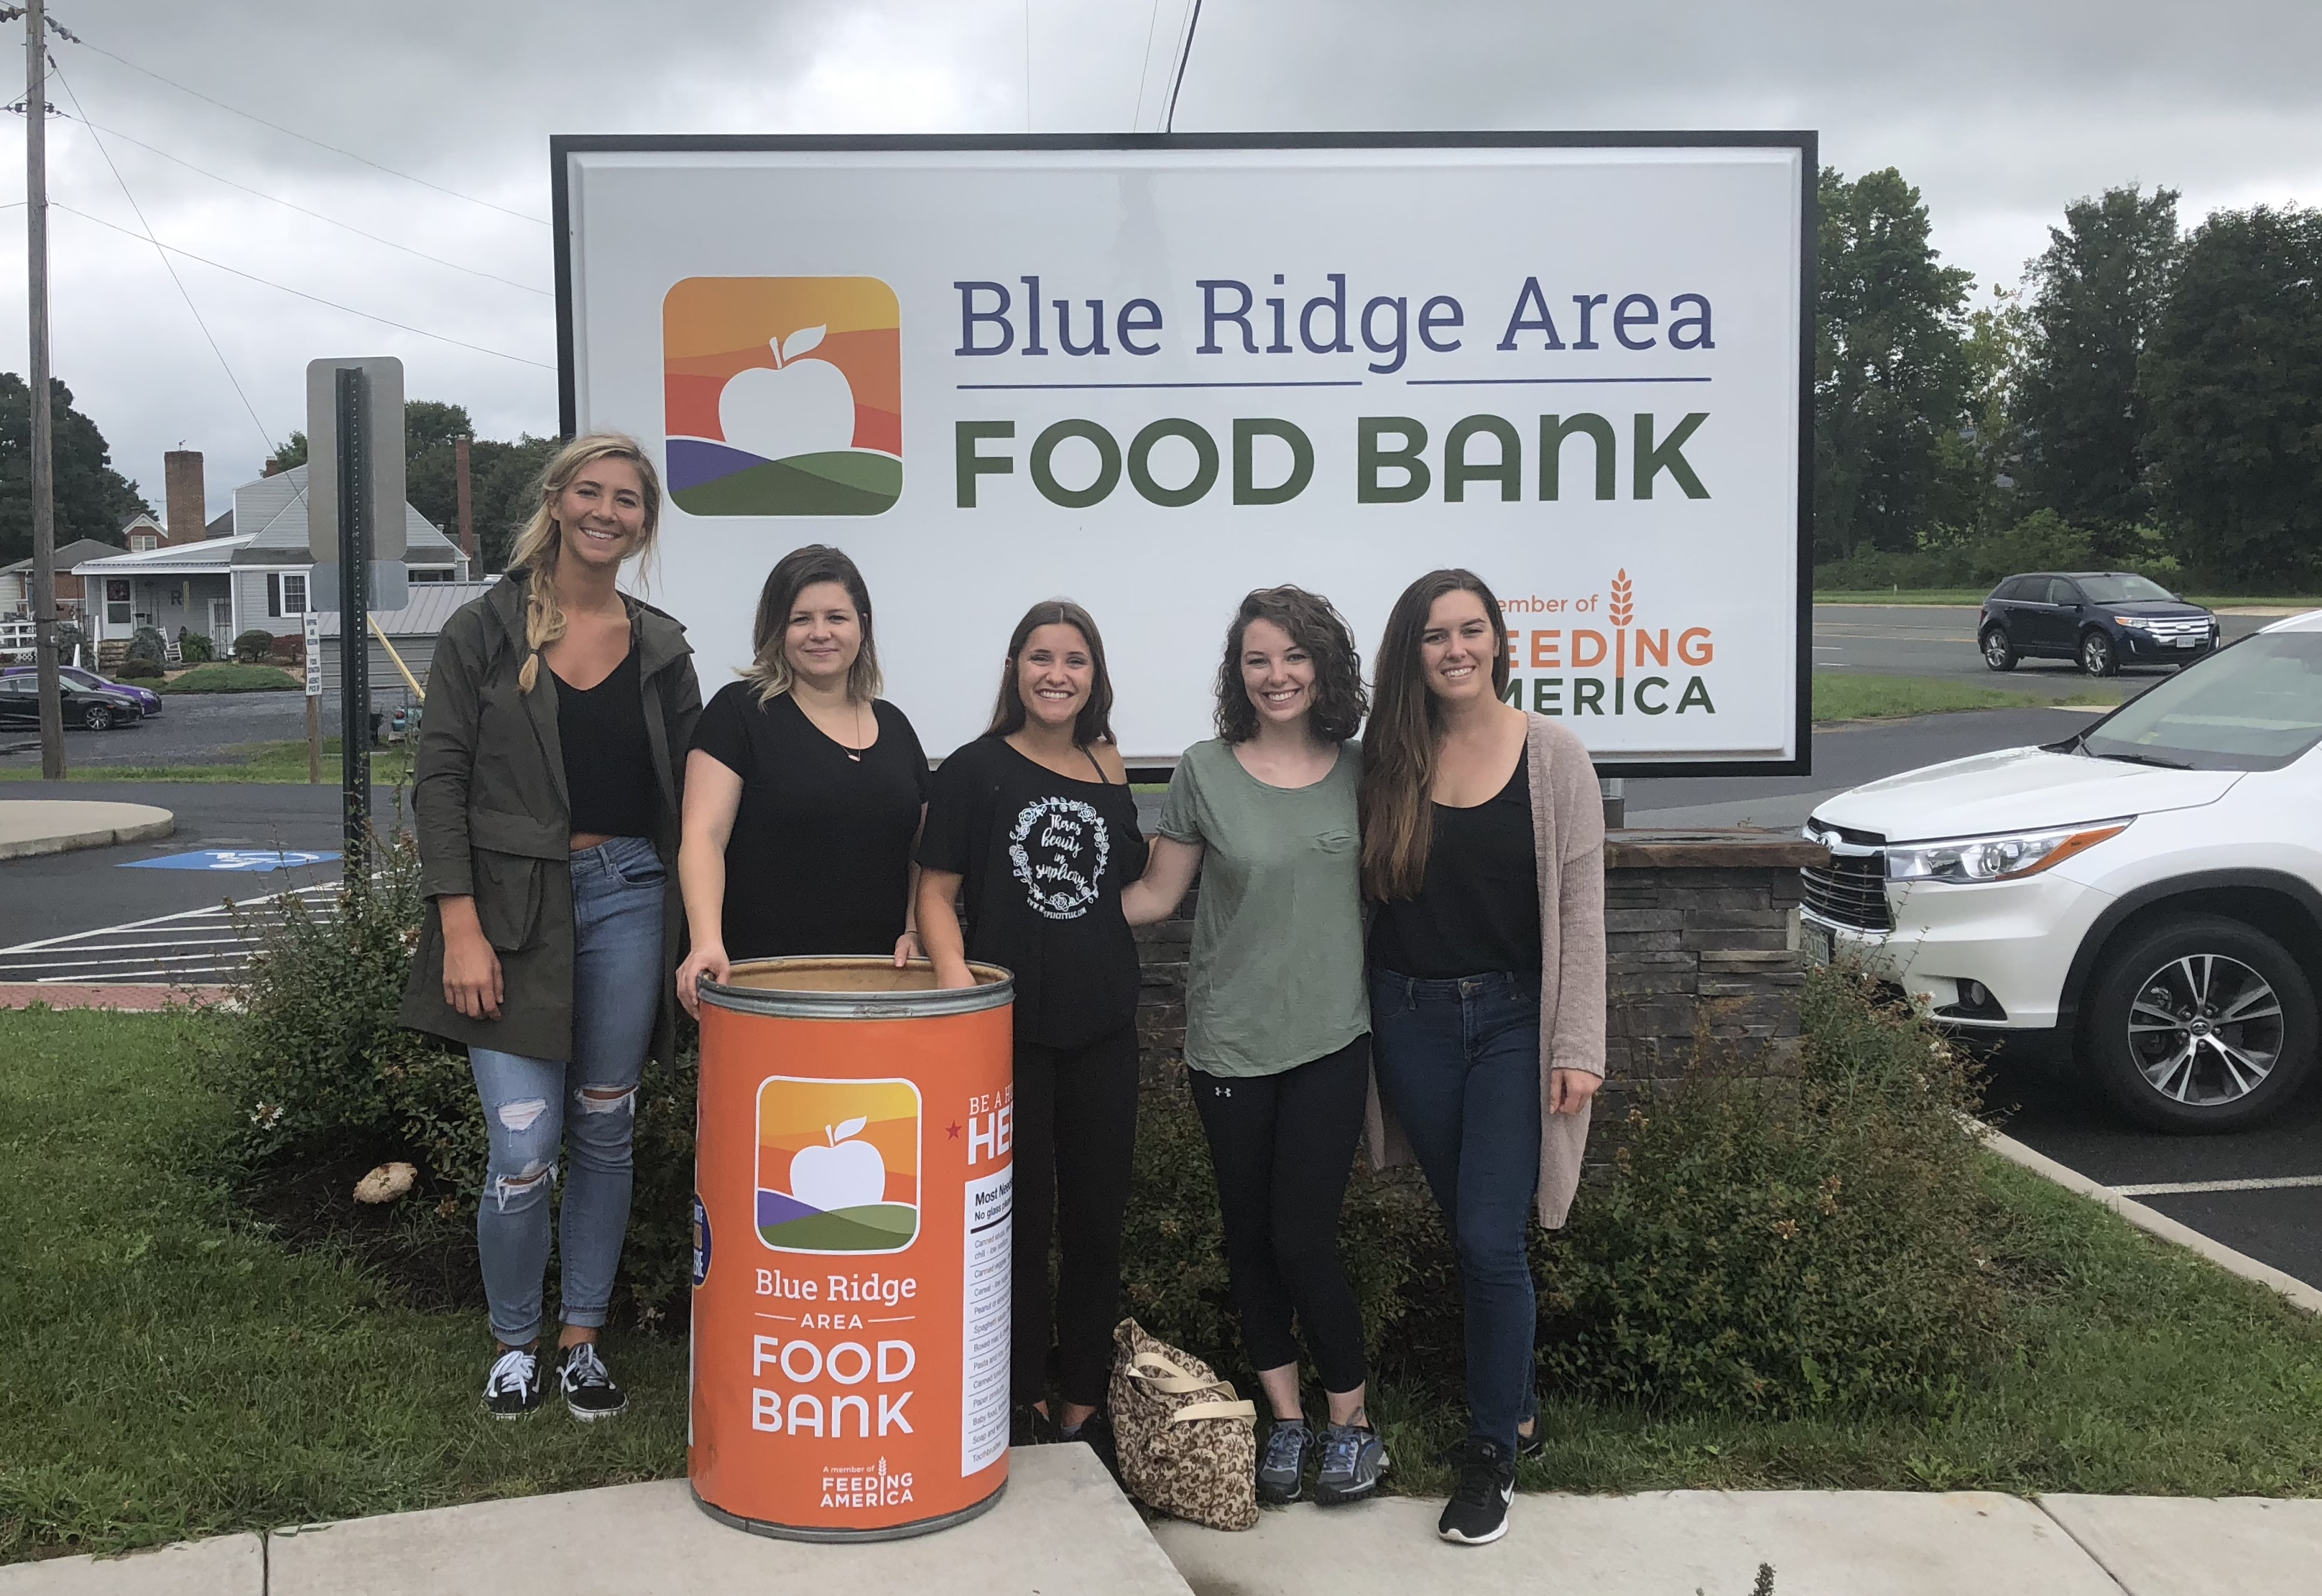 withSimplicity Team at Blue Ridge Area Food Bank